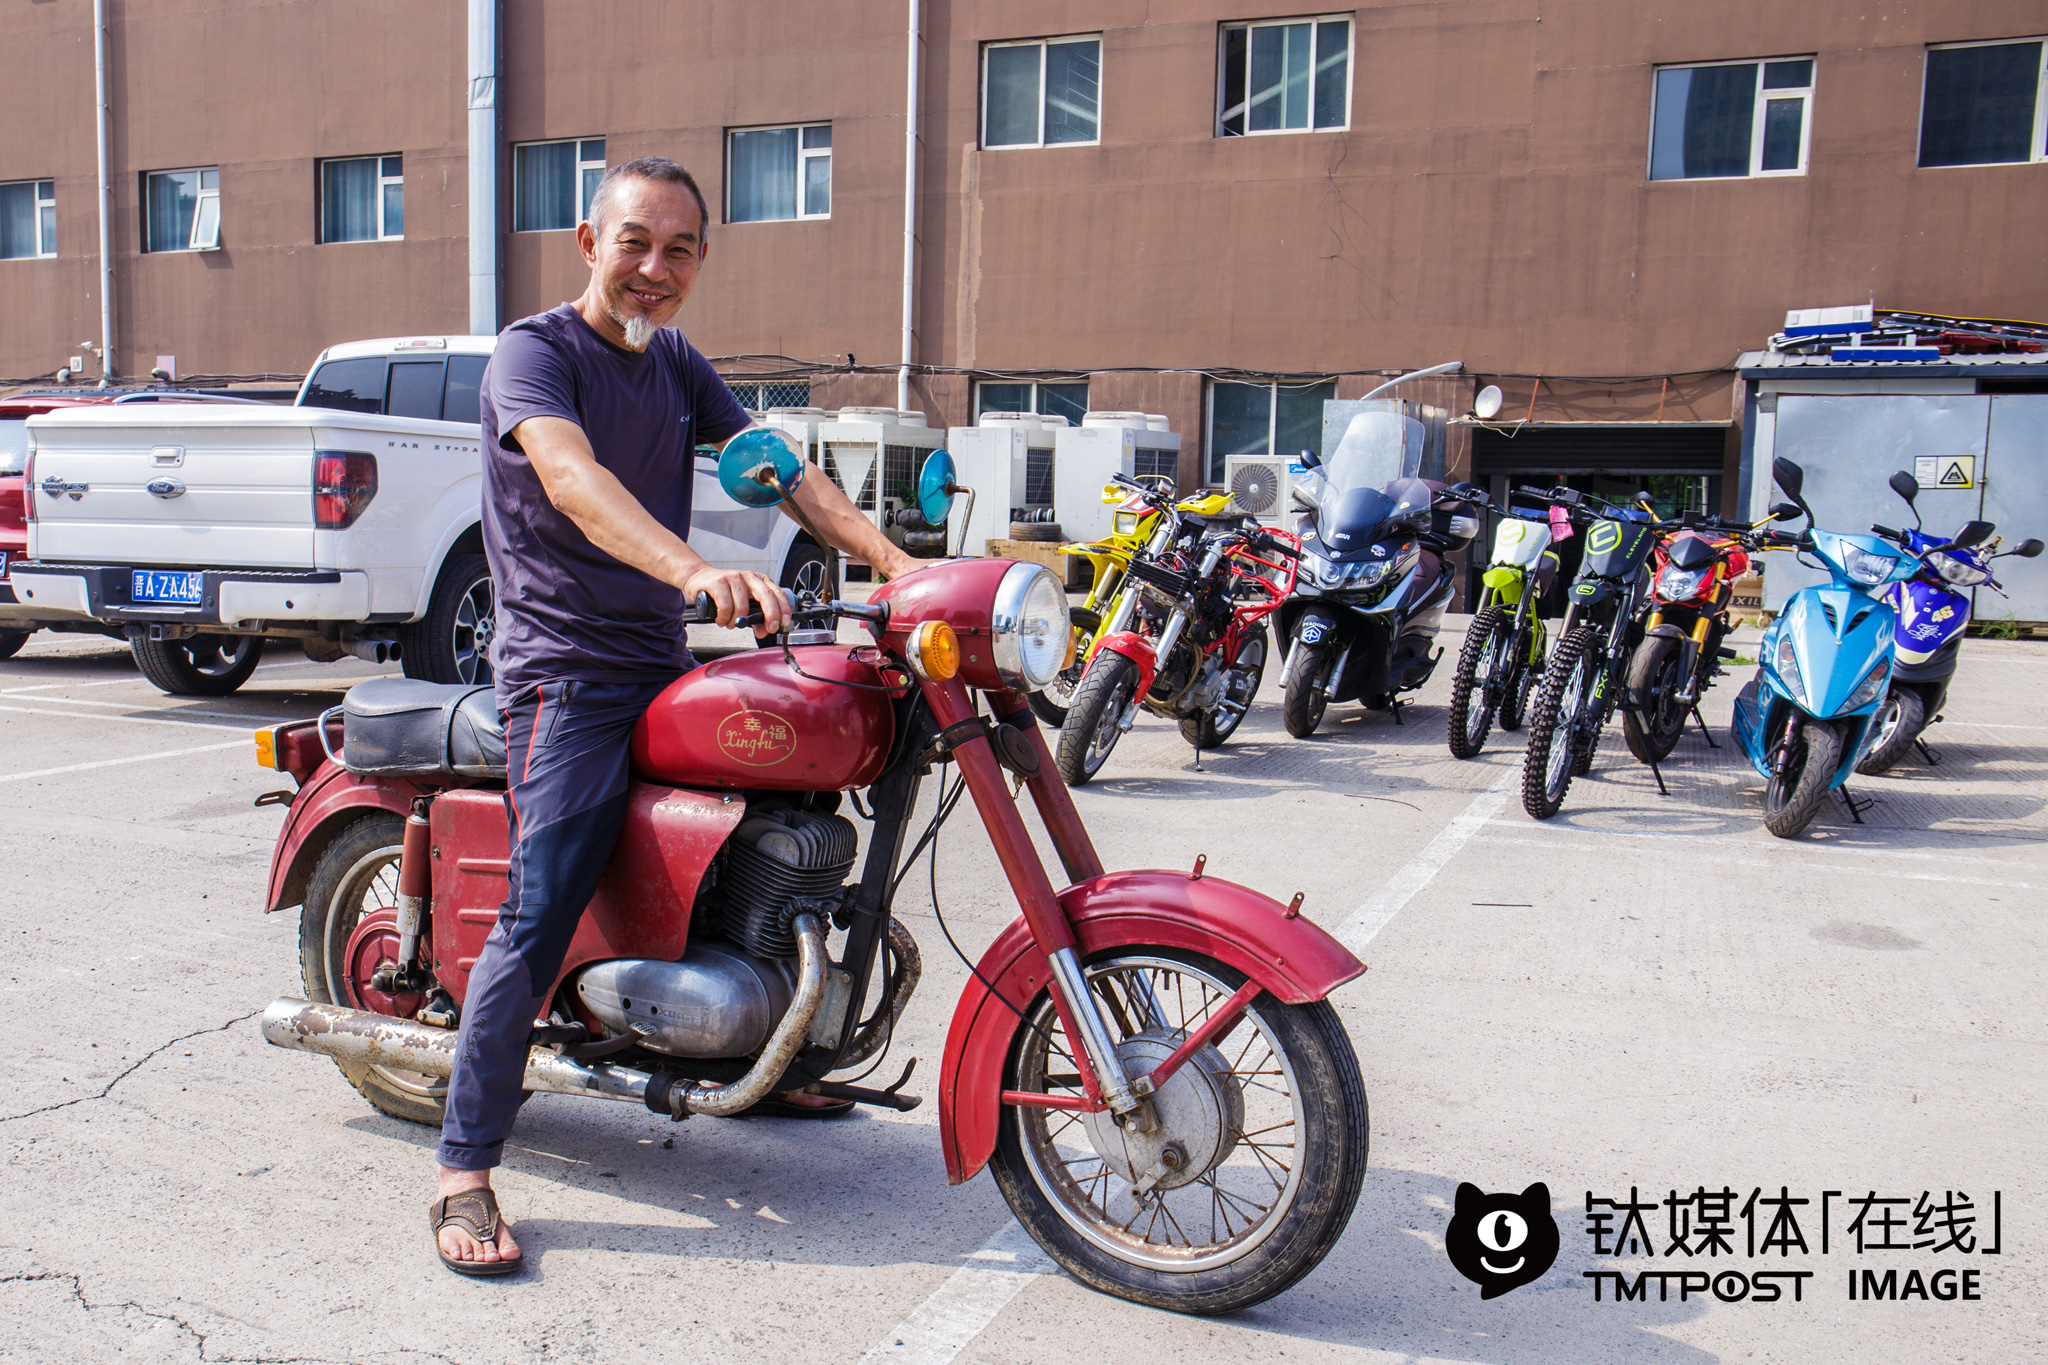 "Su Taiping, aged 51, is also a motorcycle rider. He bought his dream motorcycle Happiness at the price of 2,000 yuan from a friend in the 80s. ""At that time, Happiness motorcycle was sold at around 7,000 yuan, similar to the price of an apartment. However, I was still a factory worker and earned 10 yuan a month. I started riding race motorcycles in 1983. The majority of the first-wave race motorcycle riders have already passed away, yet I am still alive,"" he said, jokingly, ""I've bought over a dozen motorcycles and have been repairing motorcycles or selling second-hand motorcycles for a decade. Many motorcycle riders in Bejing would ask me for help when something went wrong with their motorcycles."" For him, first-wave motorcycle riders love race motorcycles because they represent fashion, today's motorcycle riders care more about being who they really are and travelling on motorcycles to see the mountains or the sea."